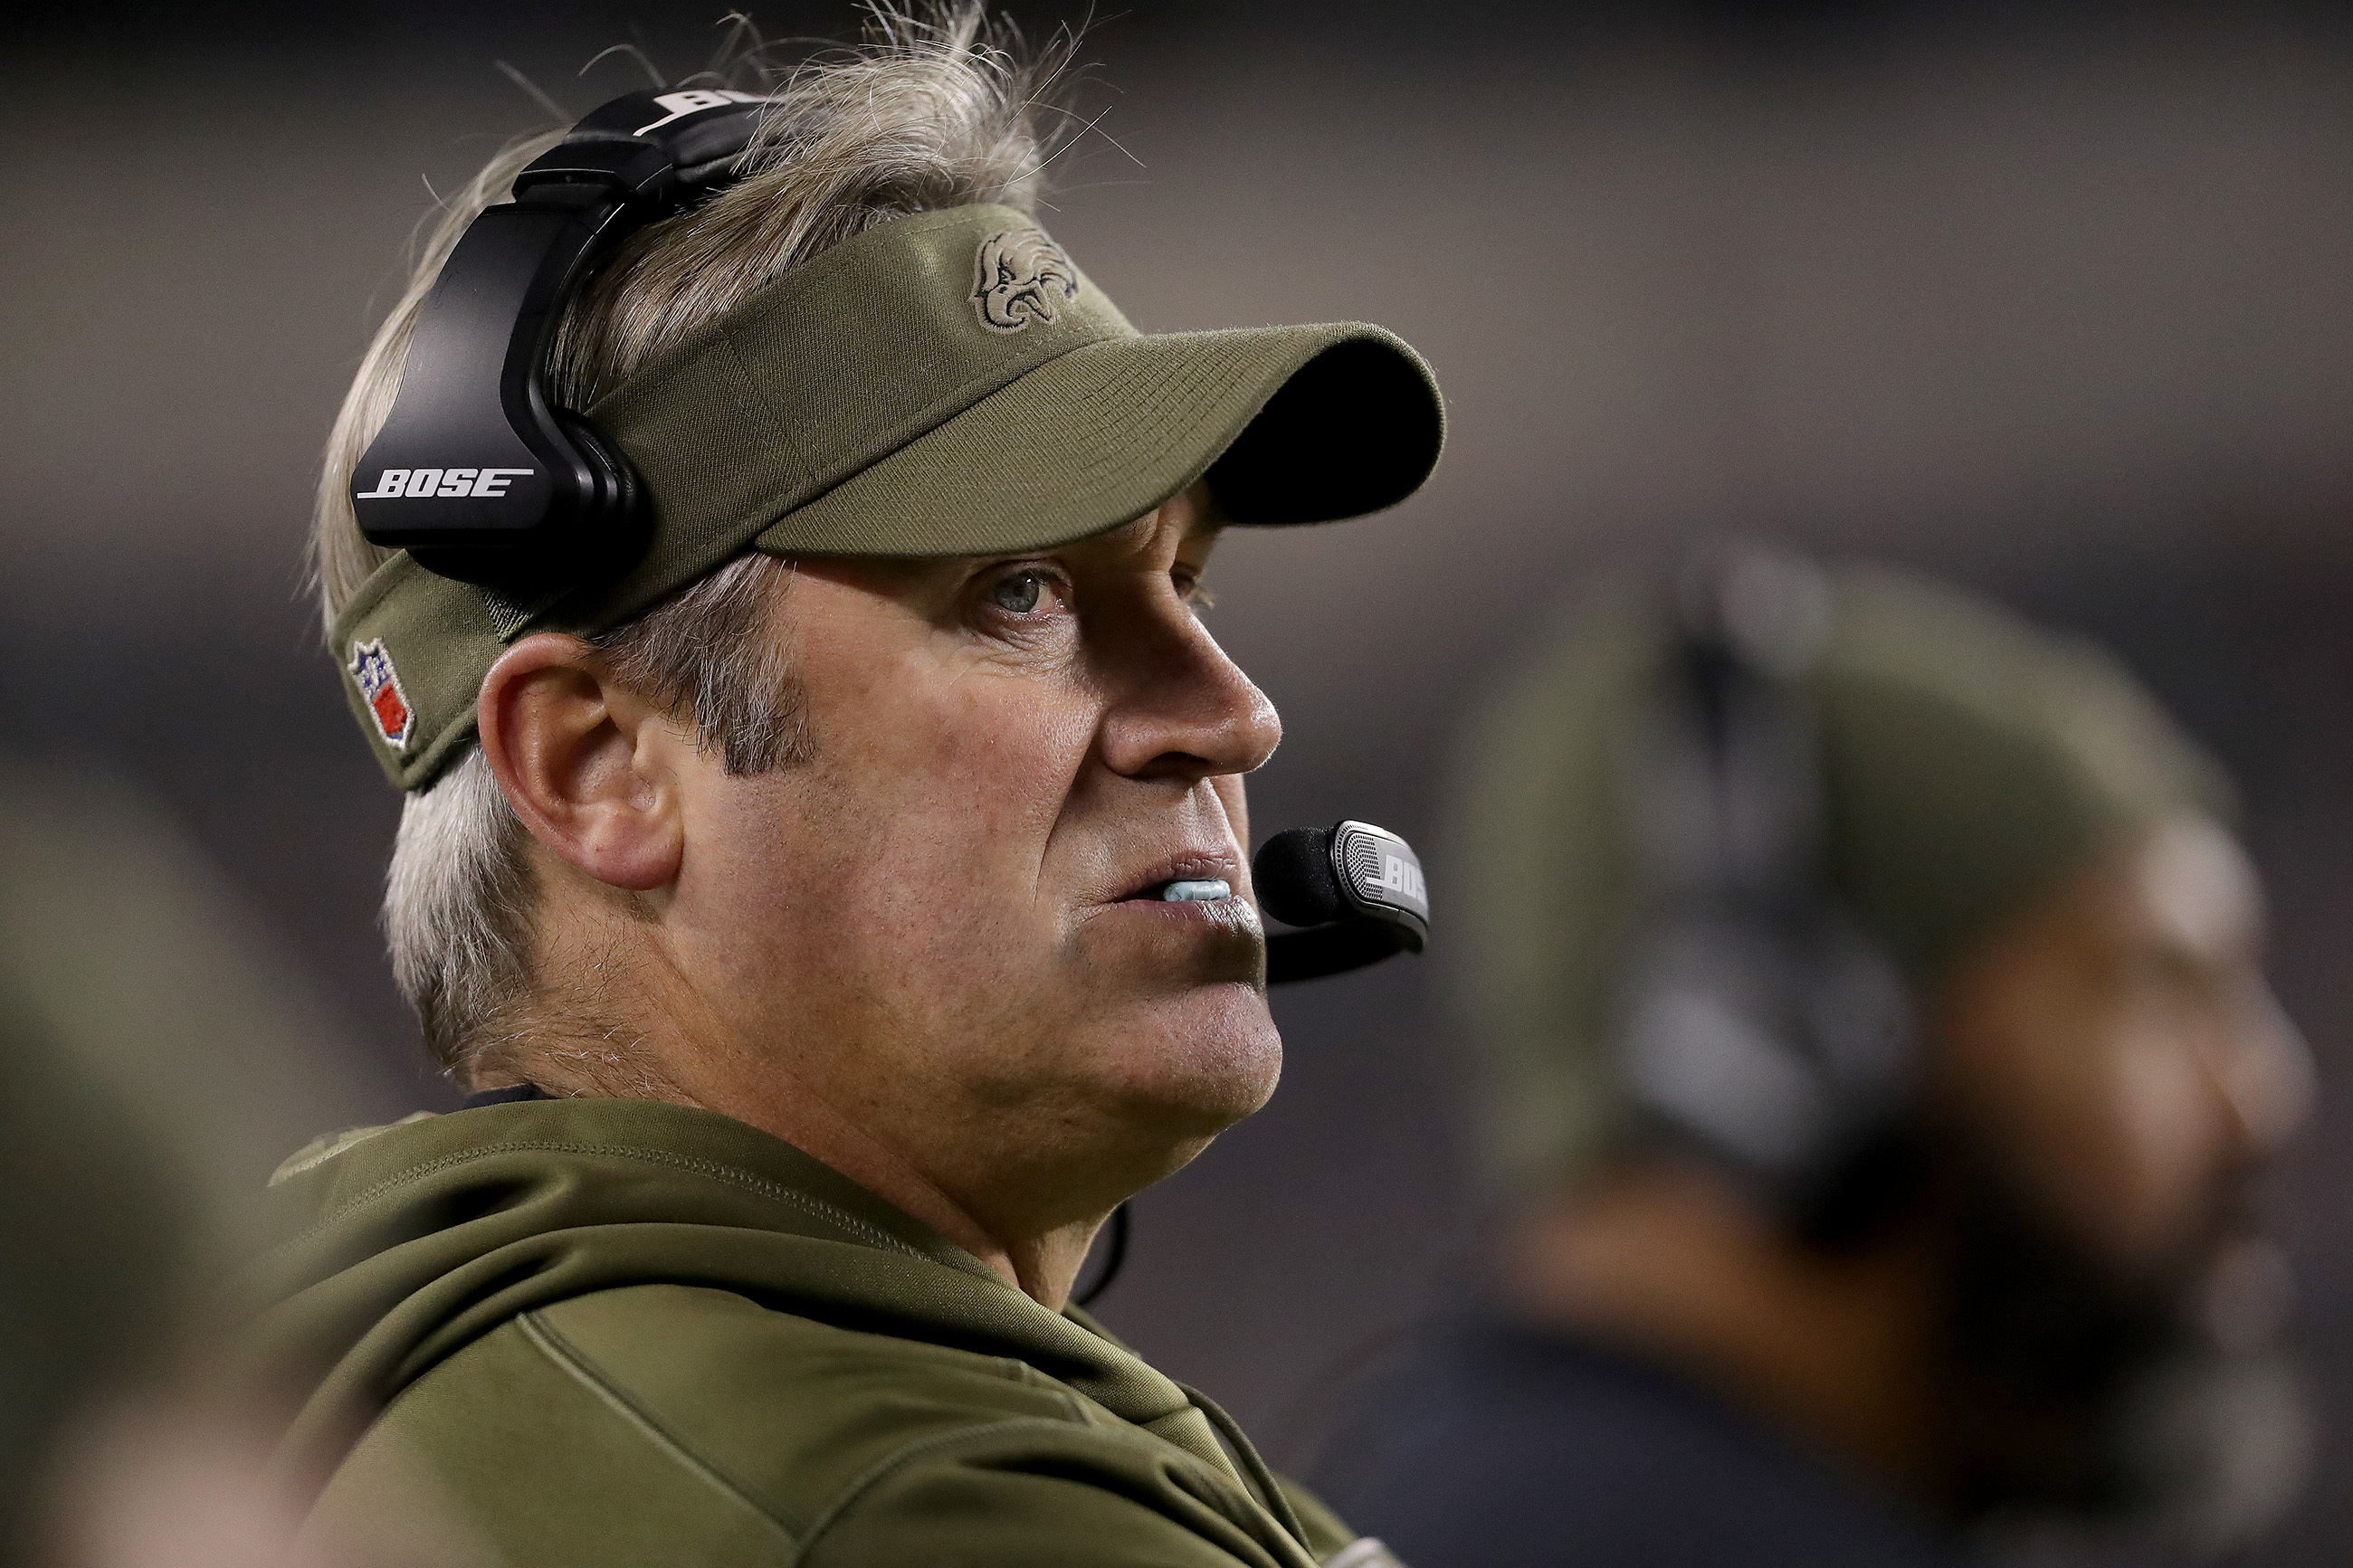 Eagles head coach Doug Pederson watches as the Cowboys drive down the field in the 4th quarter. Eagles lose 27-20 to the Dallas Cowboys at Lincoln Financial Field in Philadelphia, PA on November 11, 2018.